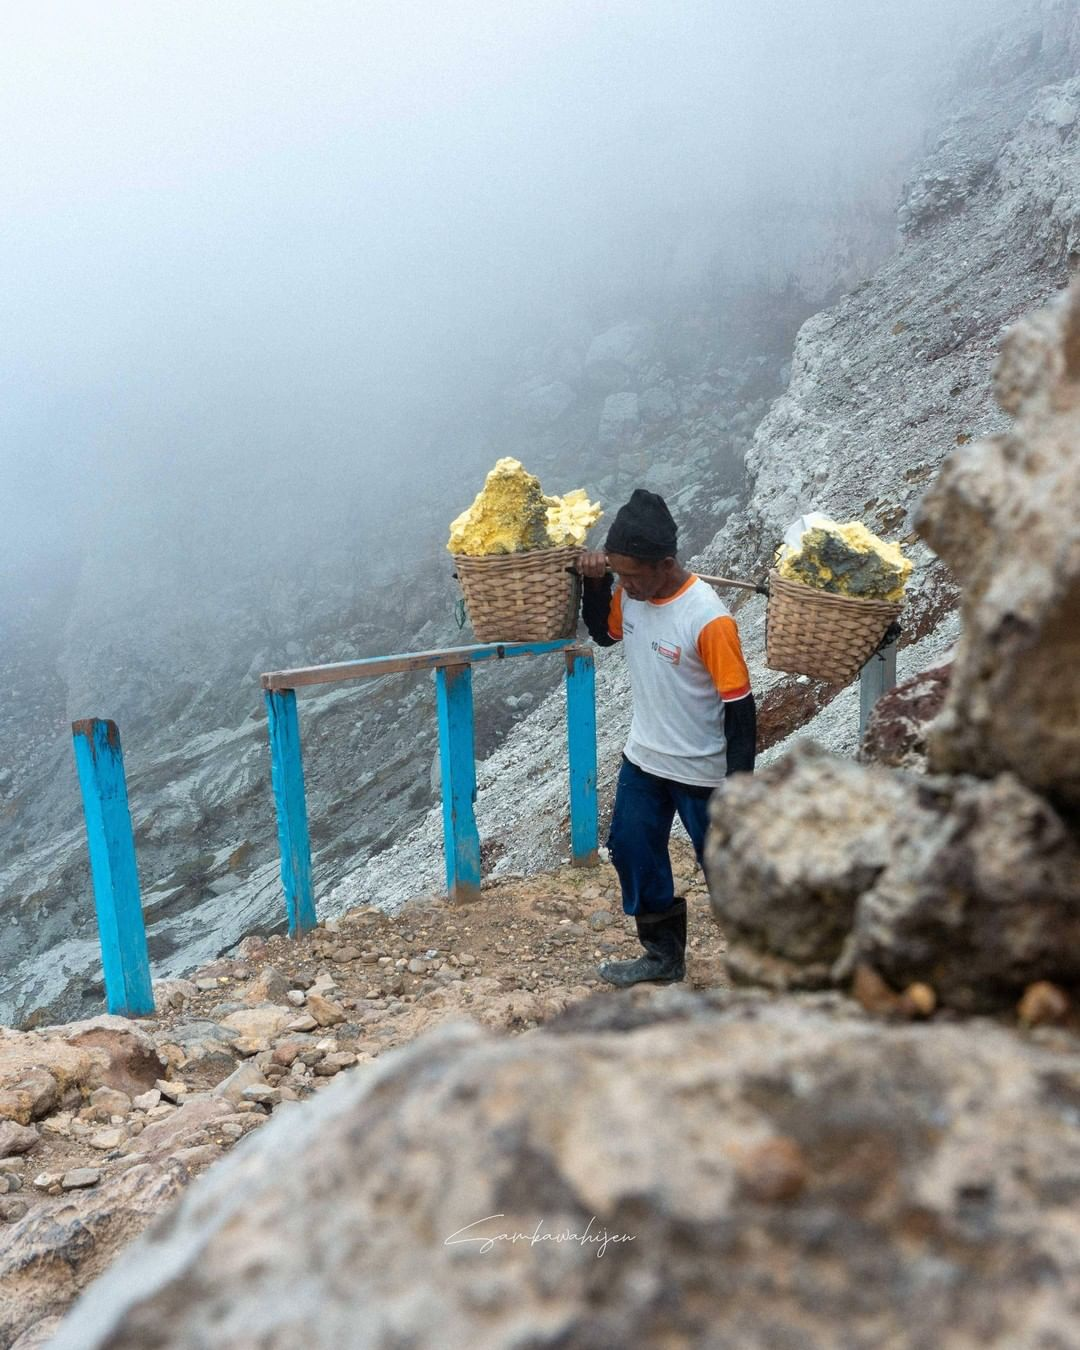 How to visit Kawah Ijen, the crater with amazing blue fire